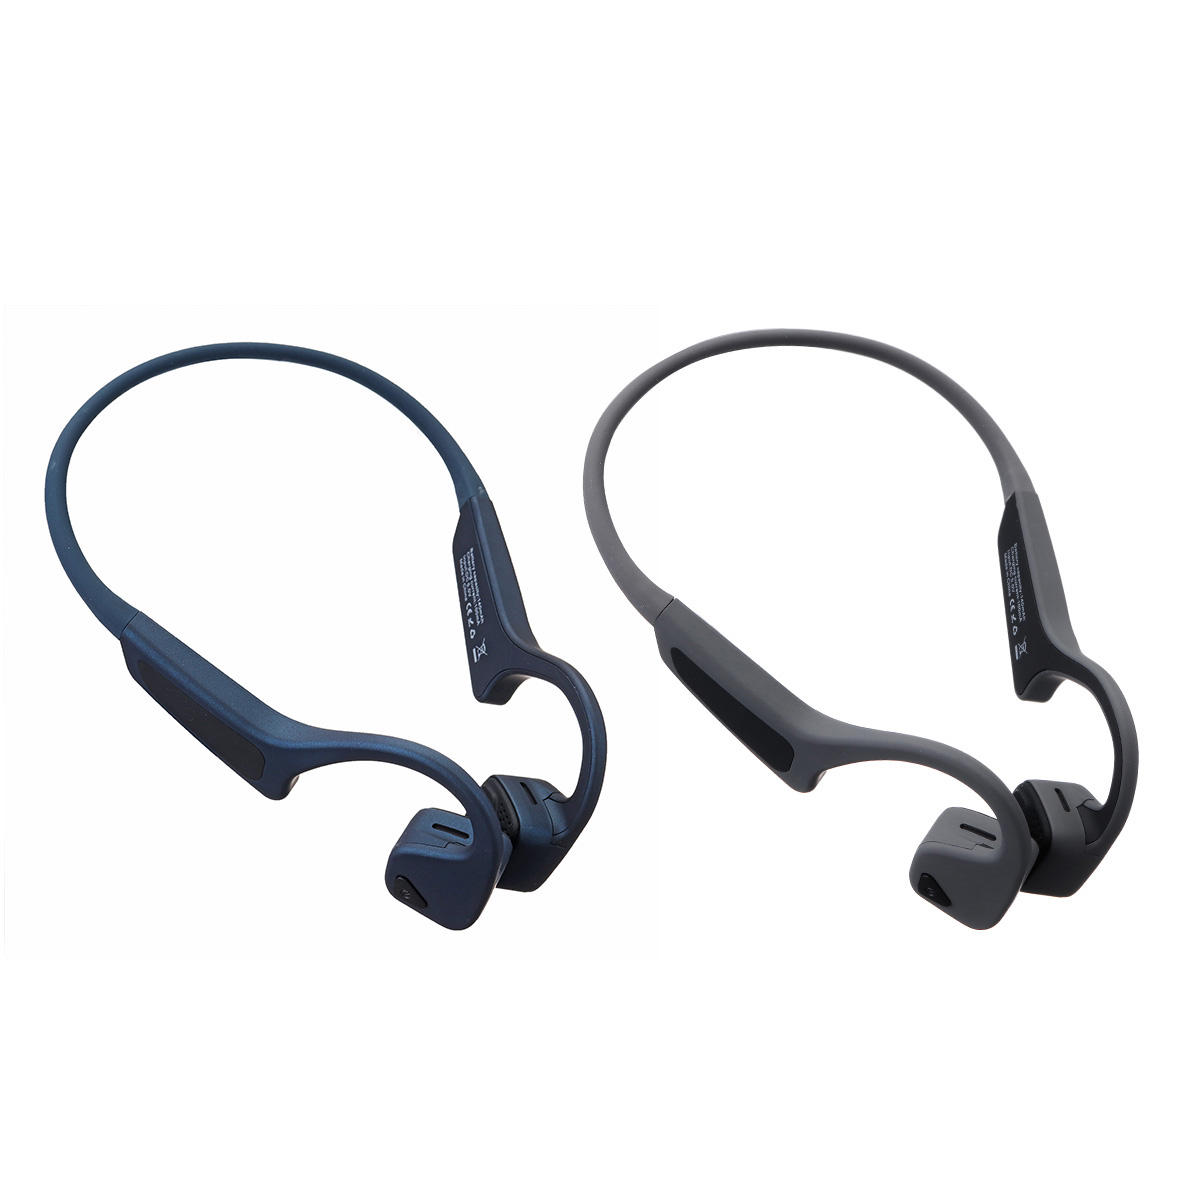 hight resolution of fmj bluetooth 5 0 wireless bone conduction earbuds ip56 waterproof noise reduction sports earphone for iphone xiaomi huawei black cod